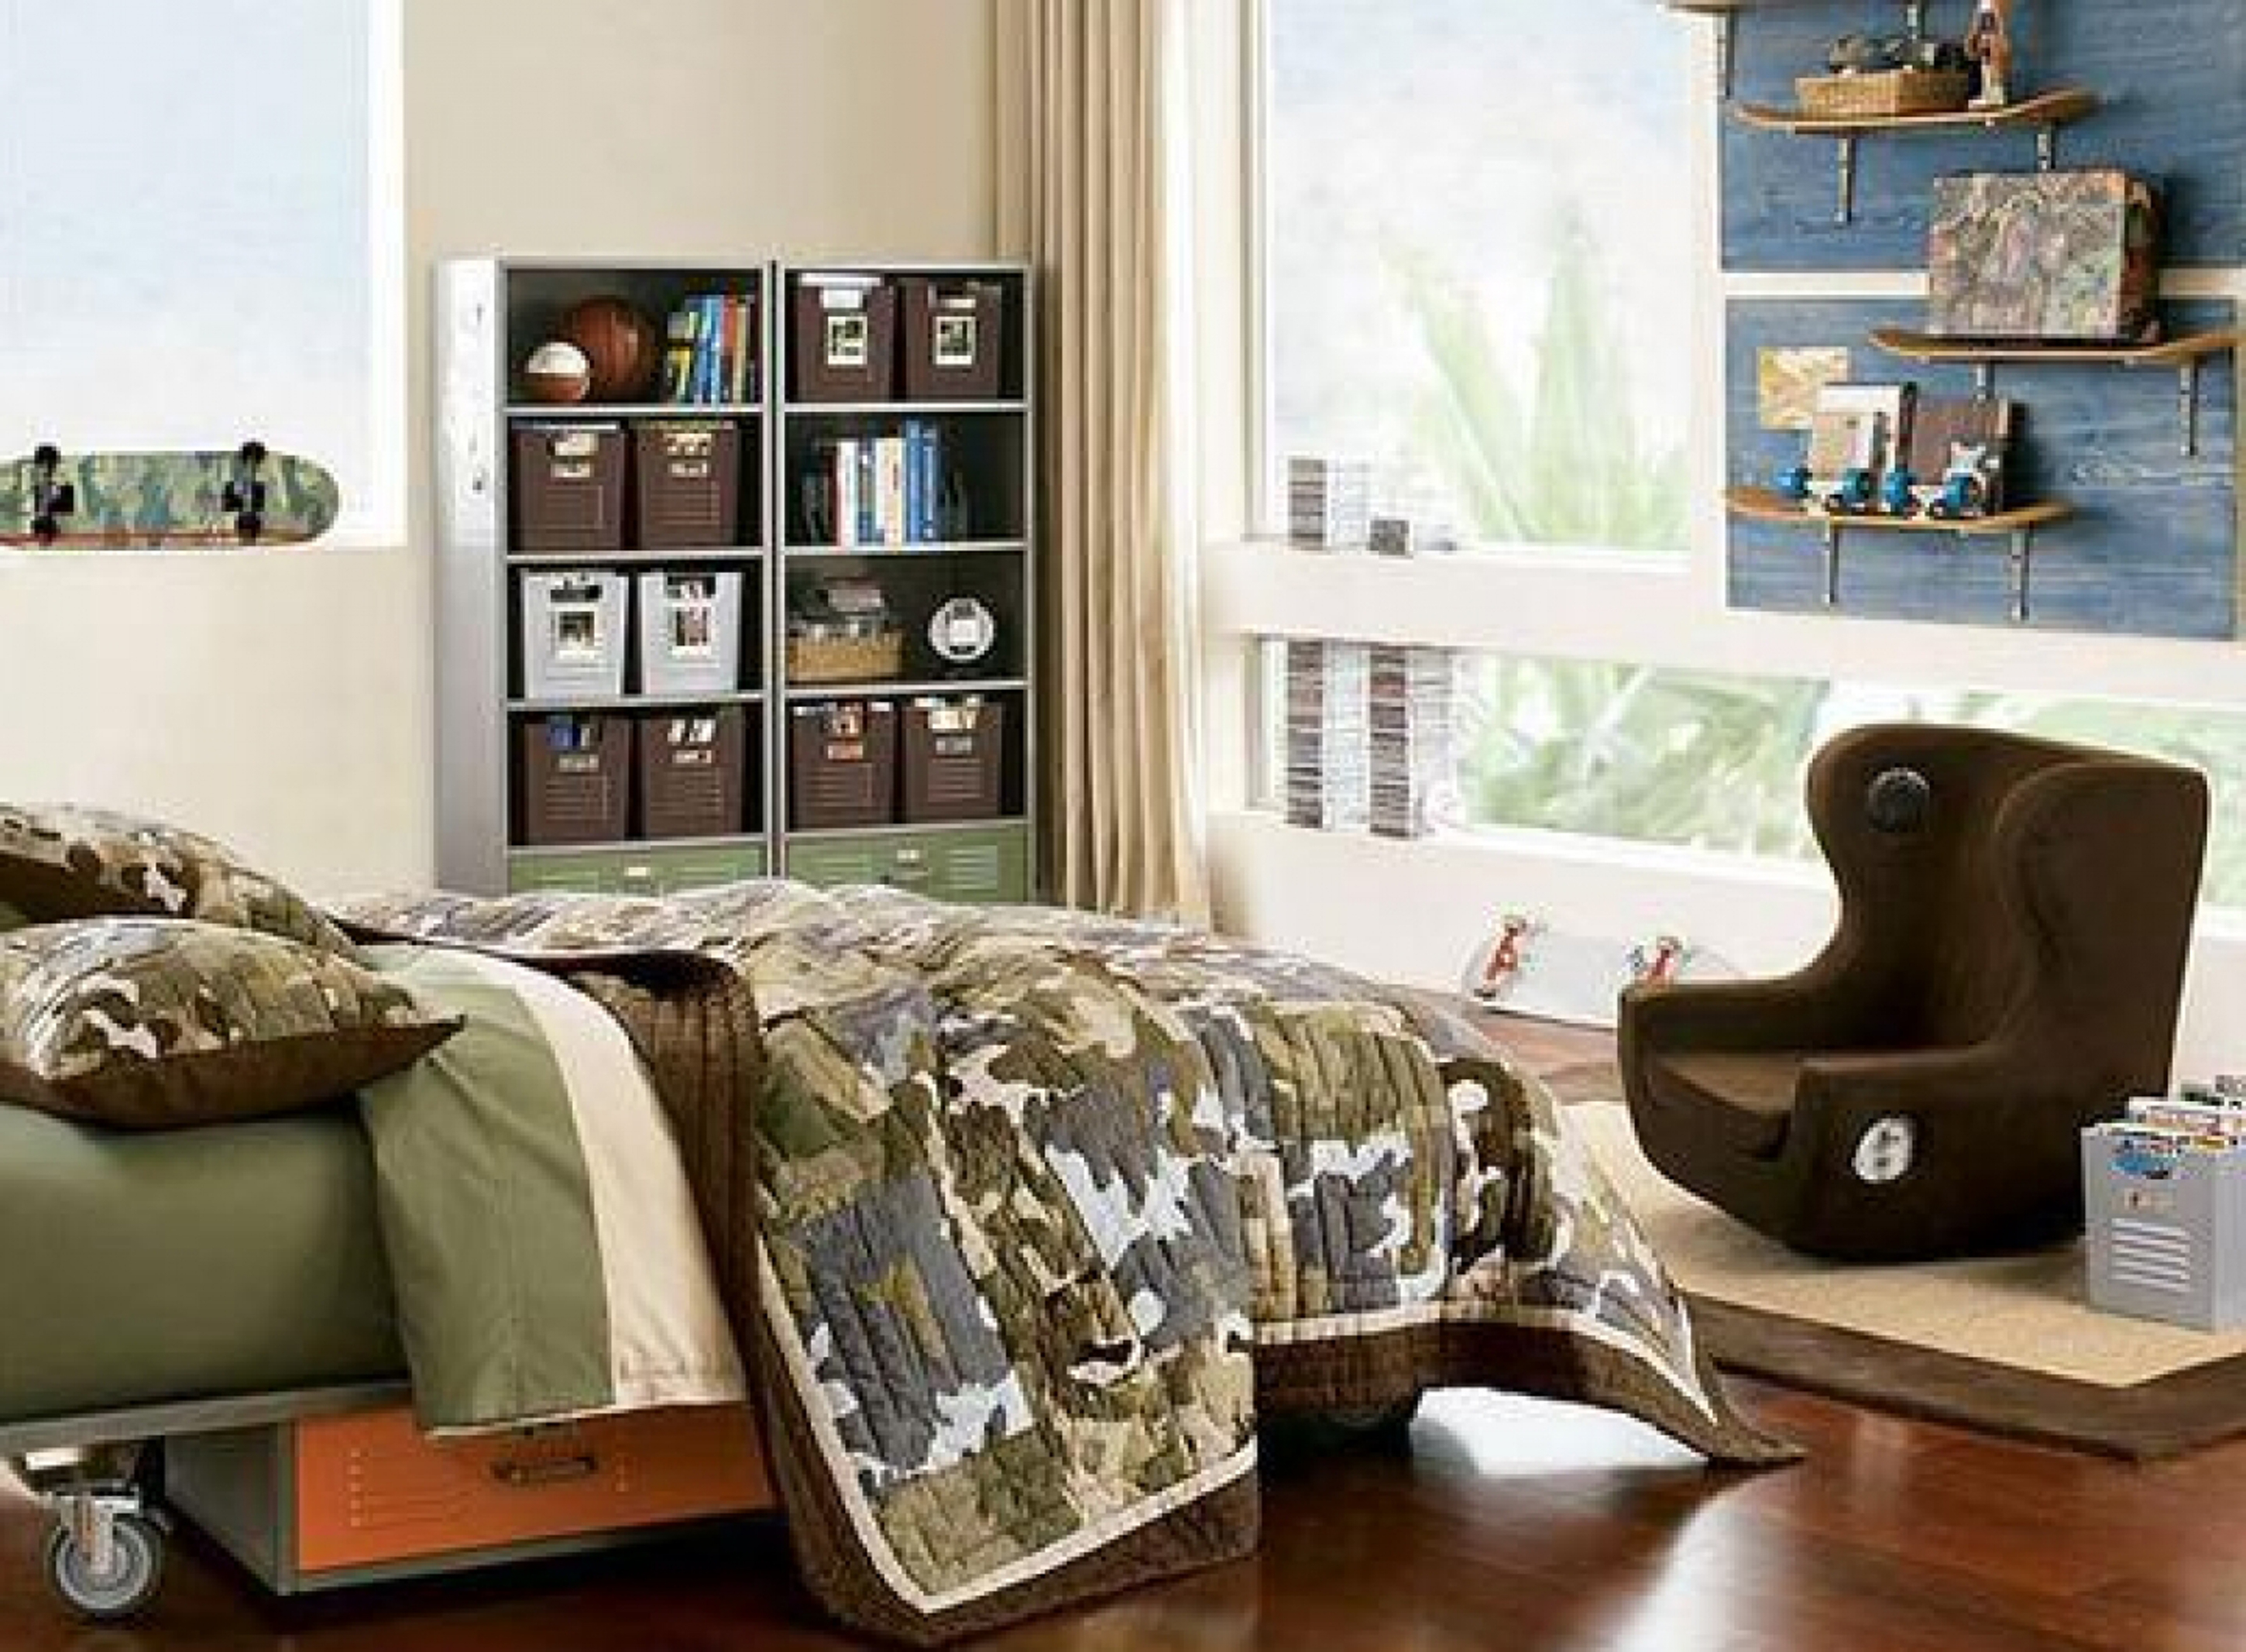 Kids Bedroom Fabulous Boys Bedroom Decoration Idea With Green Bed Cover Chocolate Armchair And White Wall Impressive Boys Bedroom Decoration Ideas (View 3 of 28)